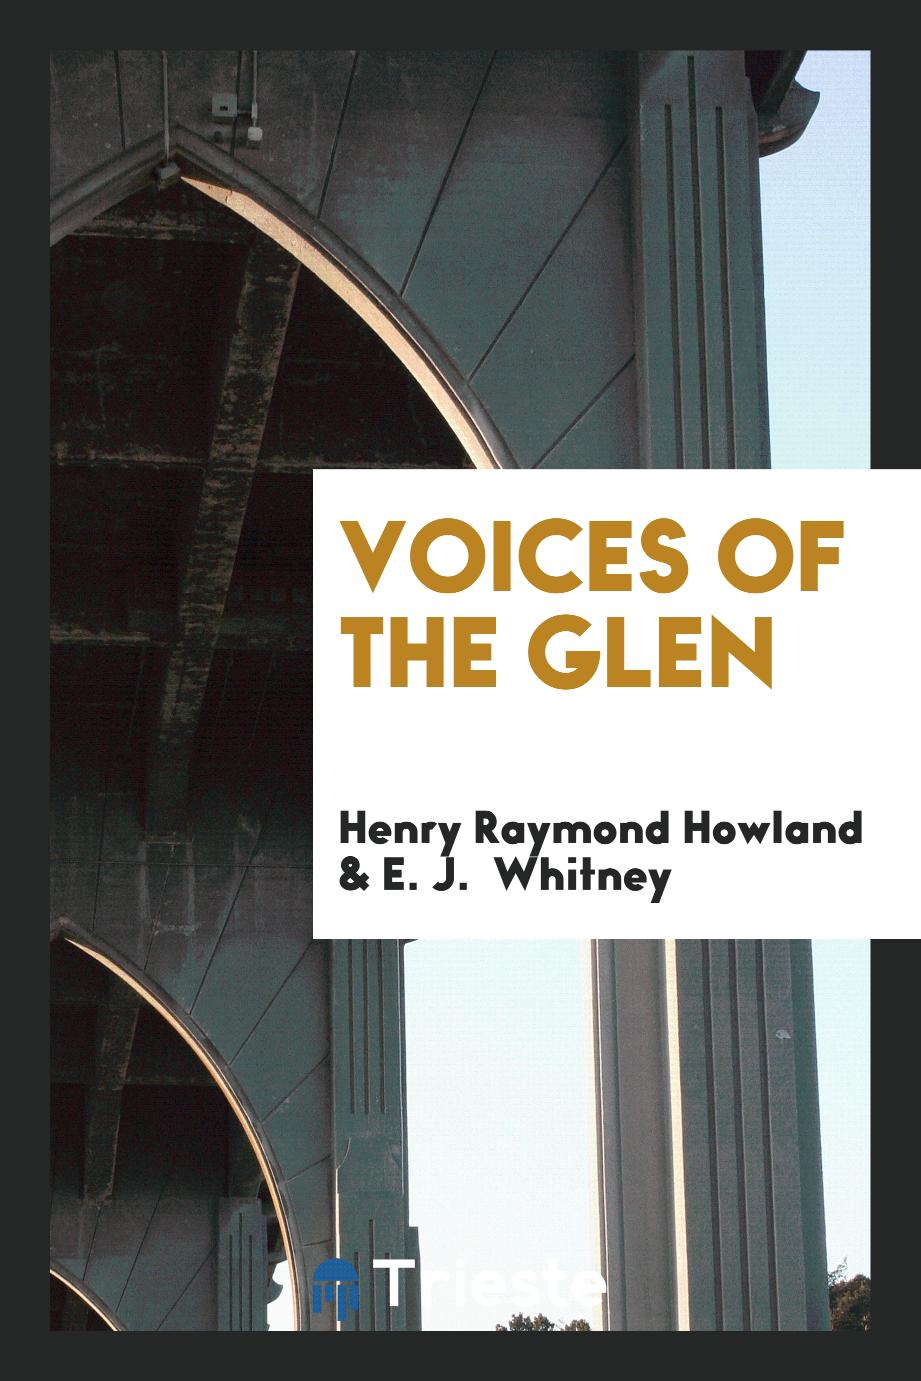 Voices of the Glen